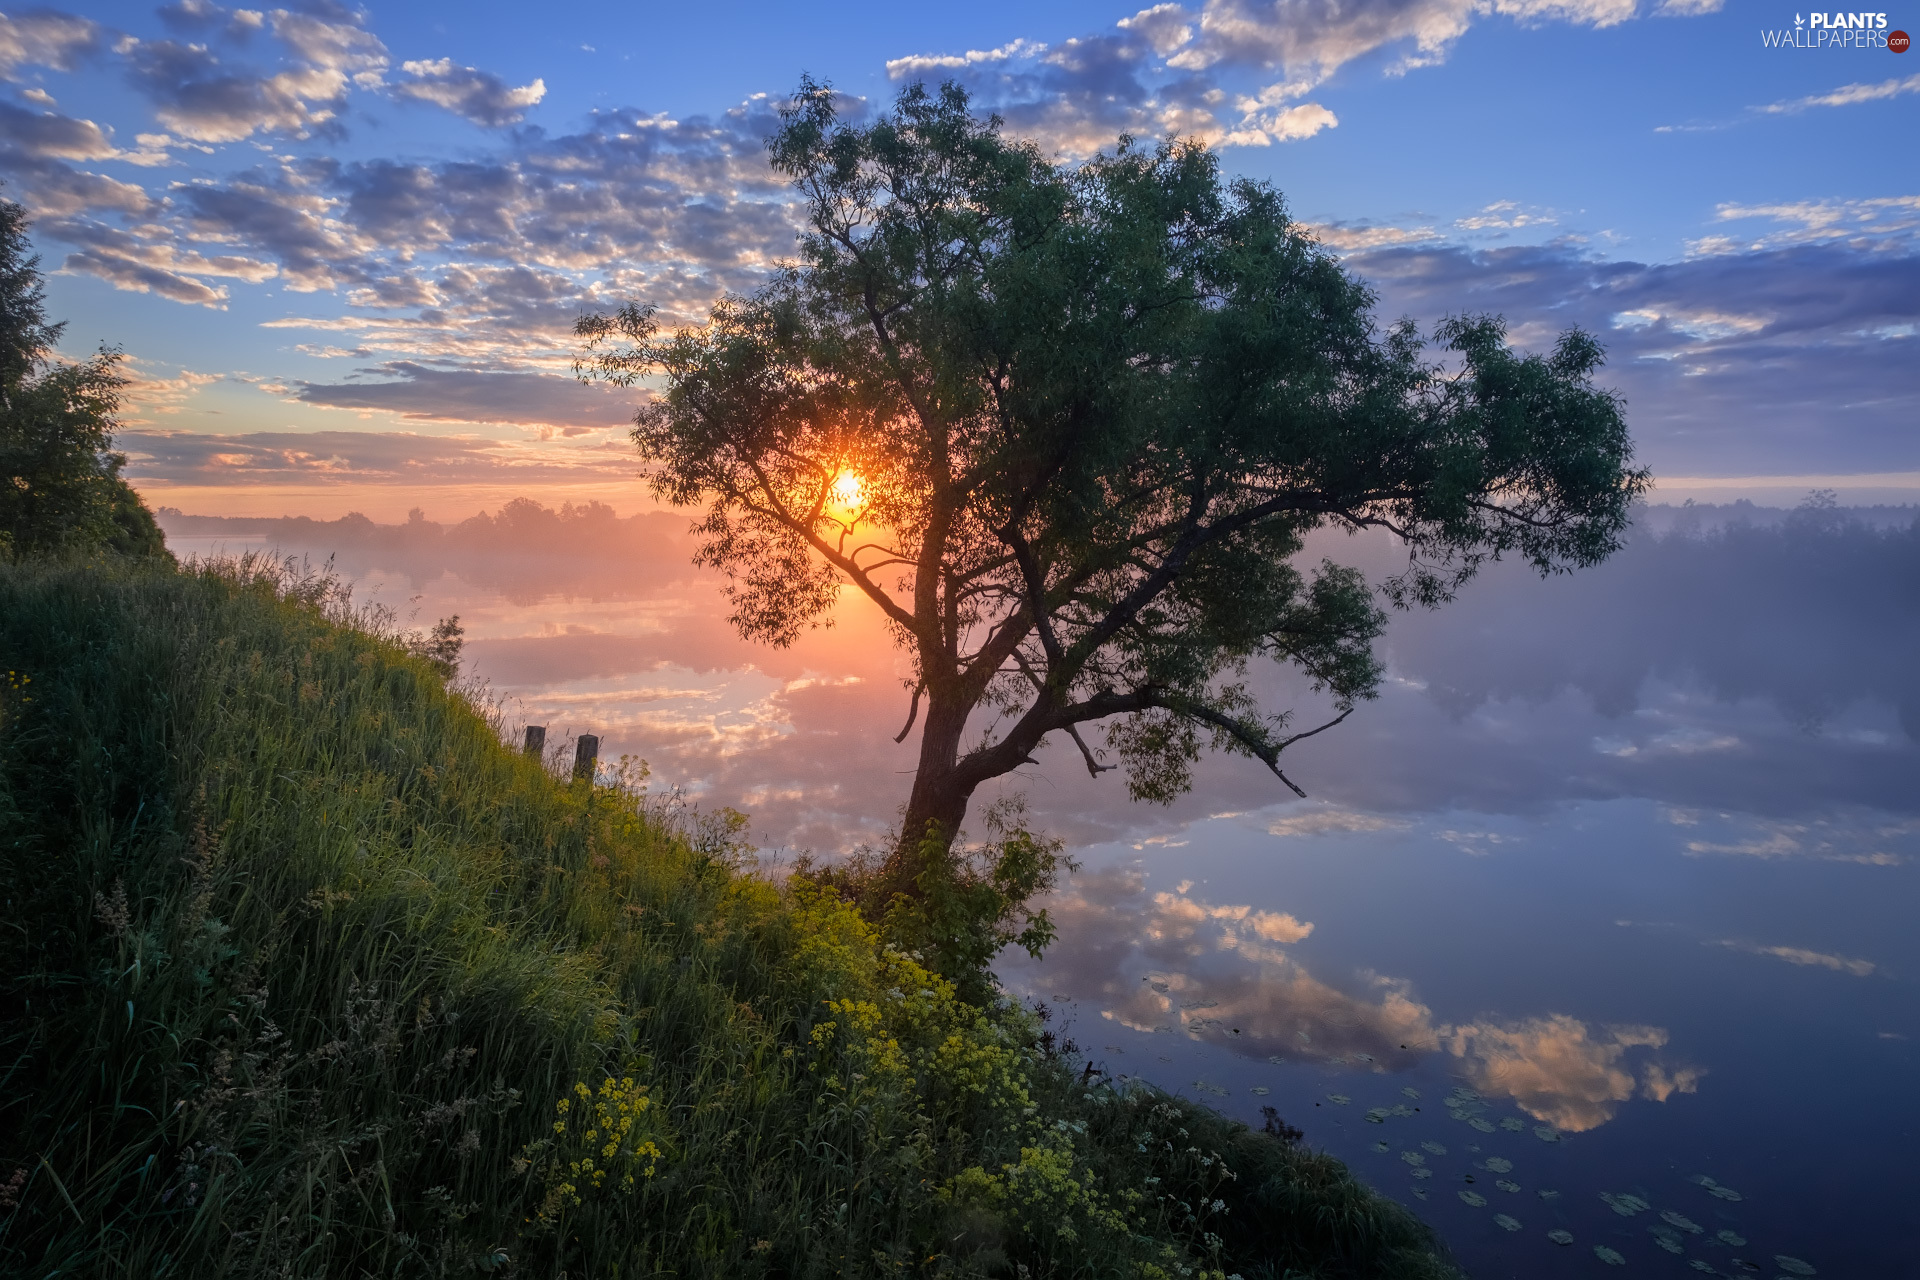 Sunrise, trees, clouds, VEGETATION, River, Fog, reflection